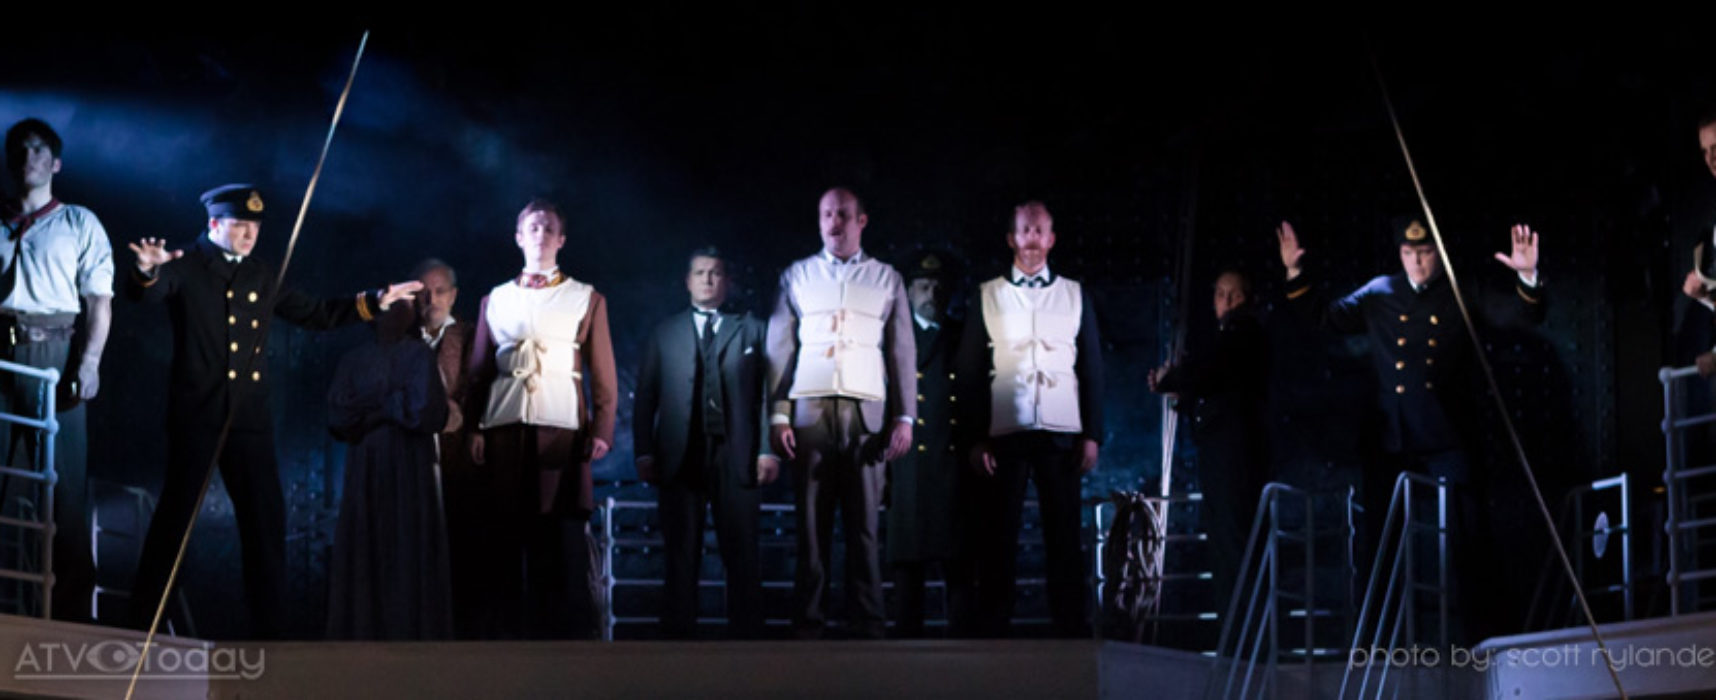 Titanic the Musical announces casting and new dates for International tour